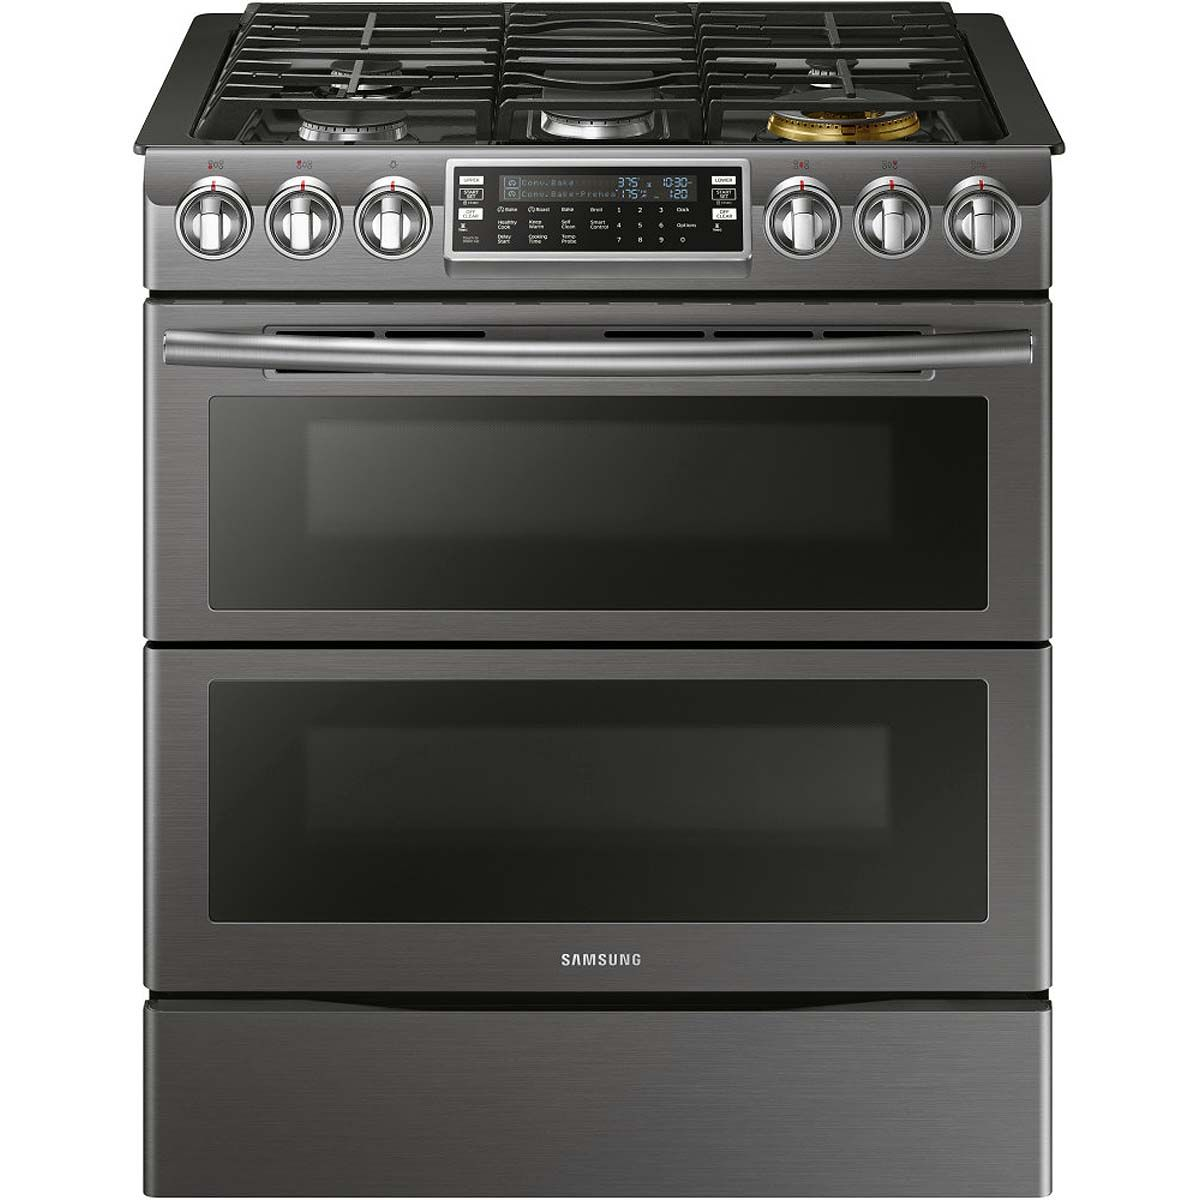 Samsung Black Stainless Slide In Gas Range Nx58k9850sg